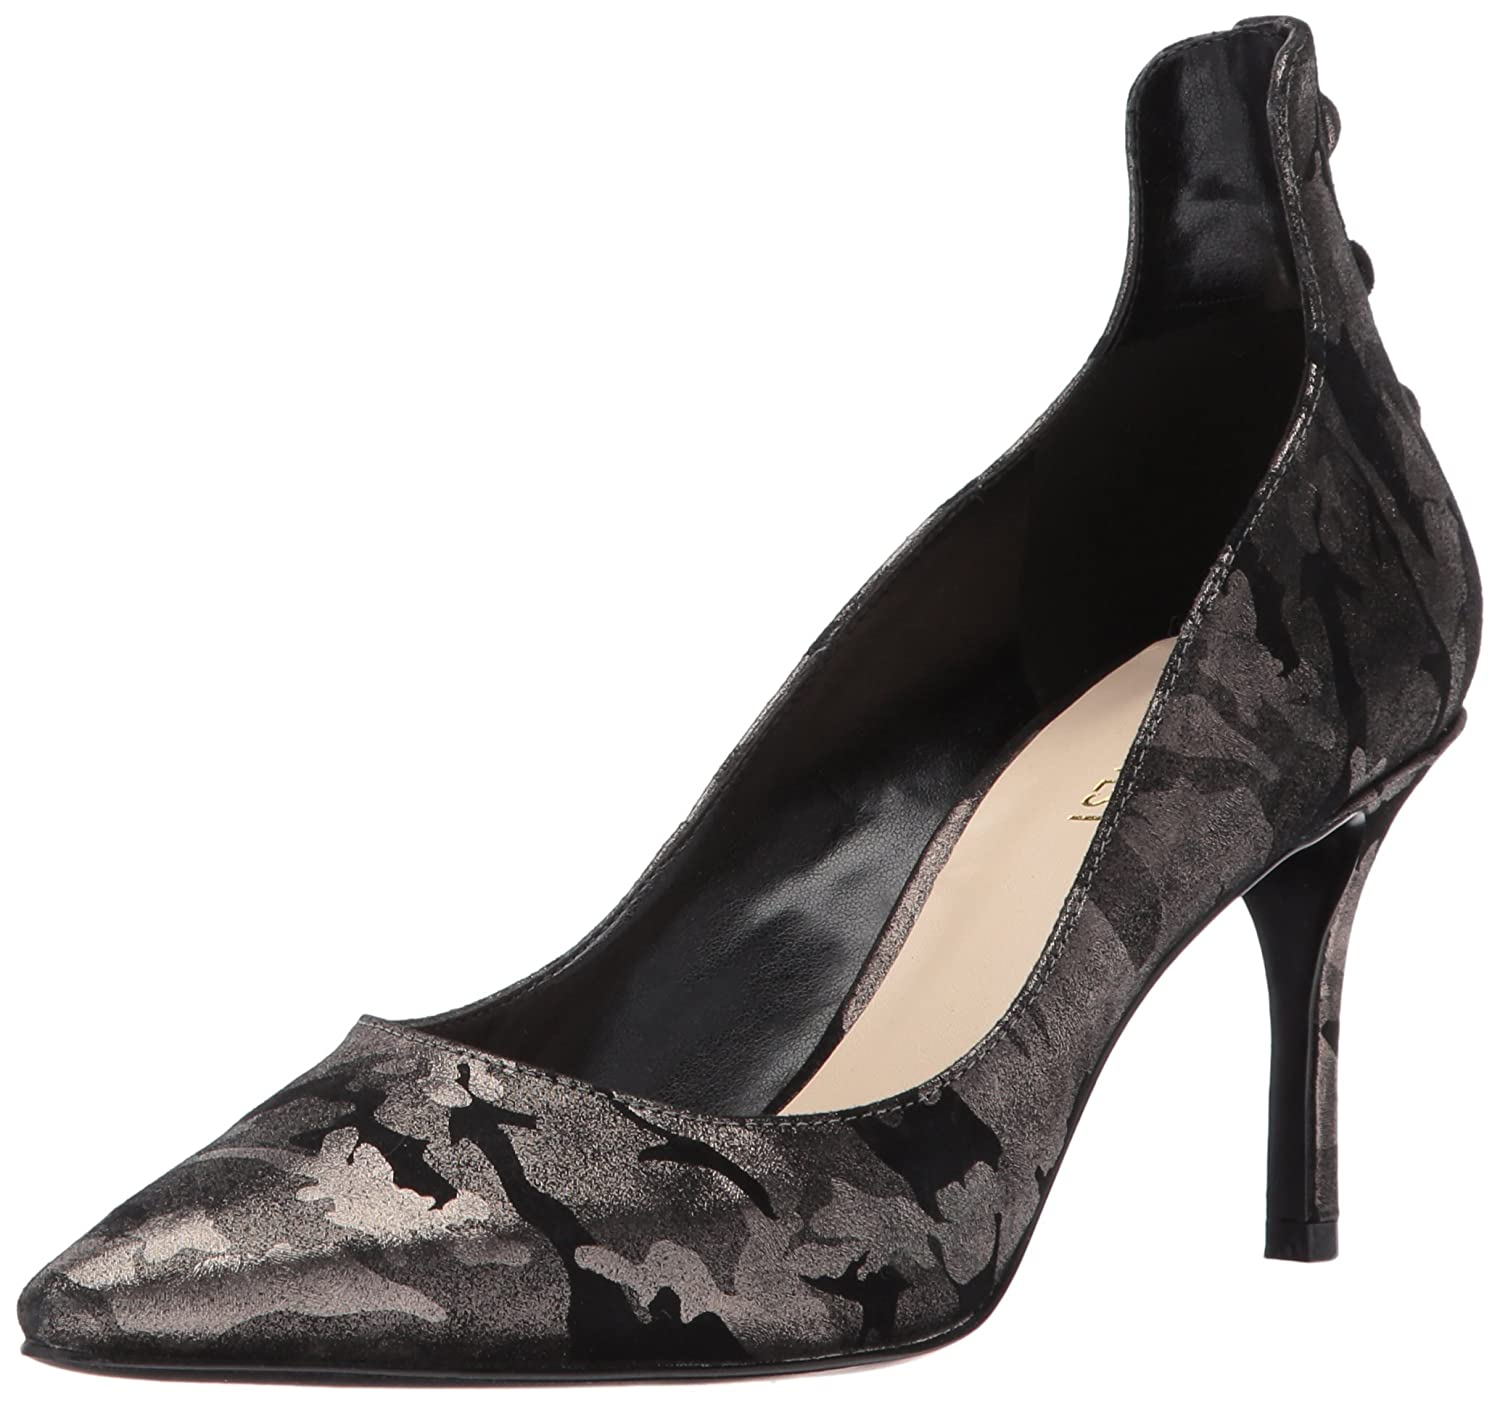 Nine West Women's Maqui Pump B01MZICH5Z 7.5 B(M) US|Pewter Metallic